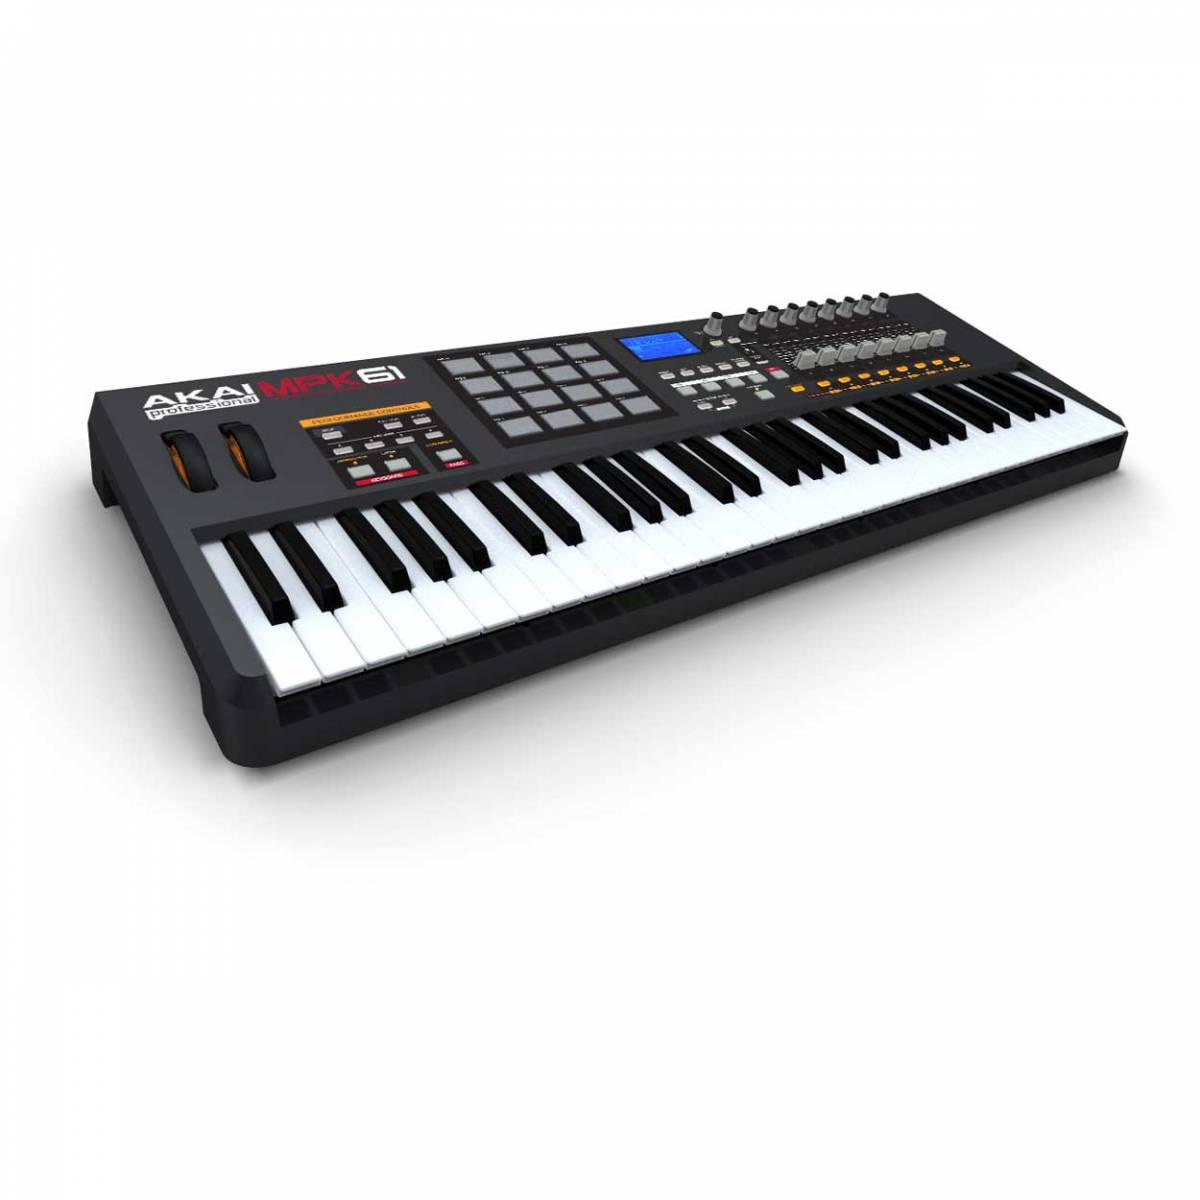 akai mpk61 61 key usb midi keyboard controller mpk 61 keyboards midi from inta audio uk. Black Bedroom Furniture Sets. Home Design Ideas